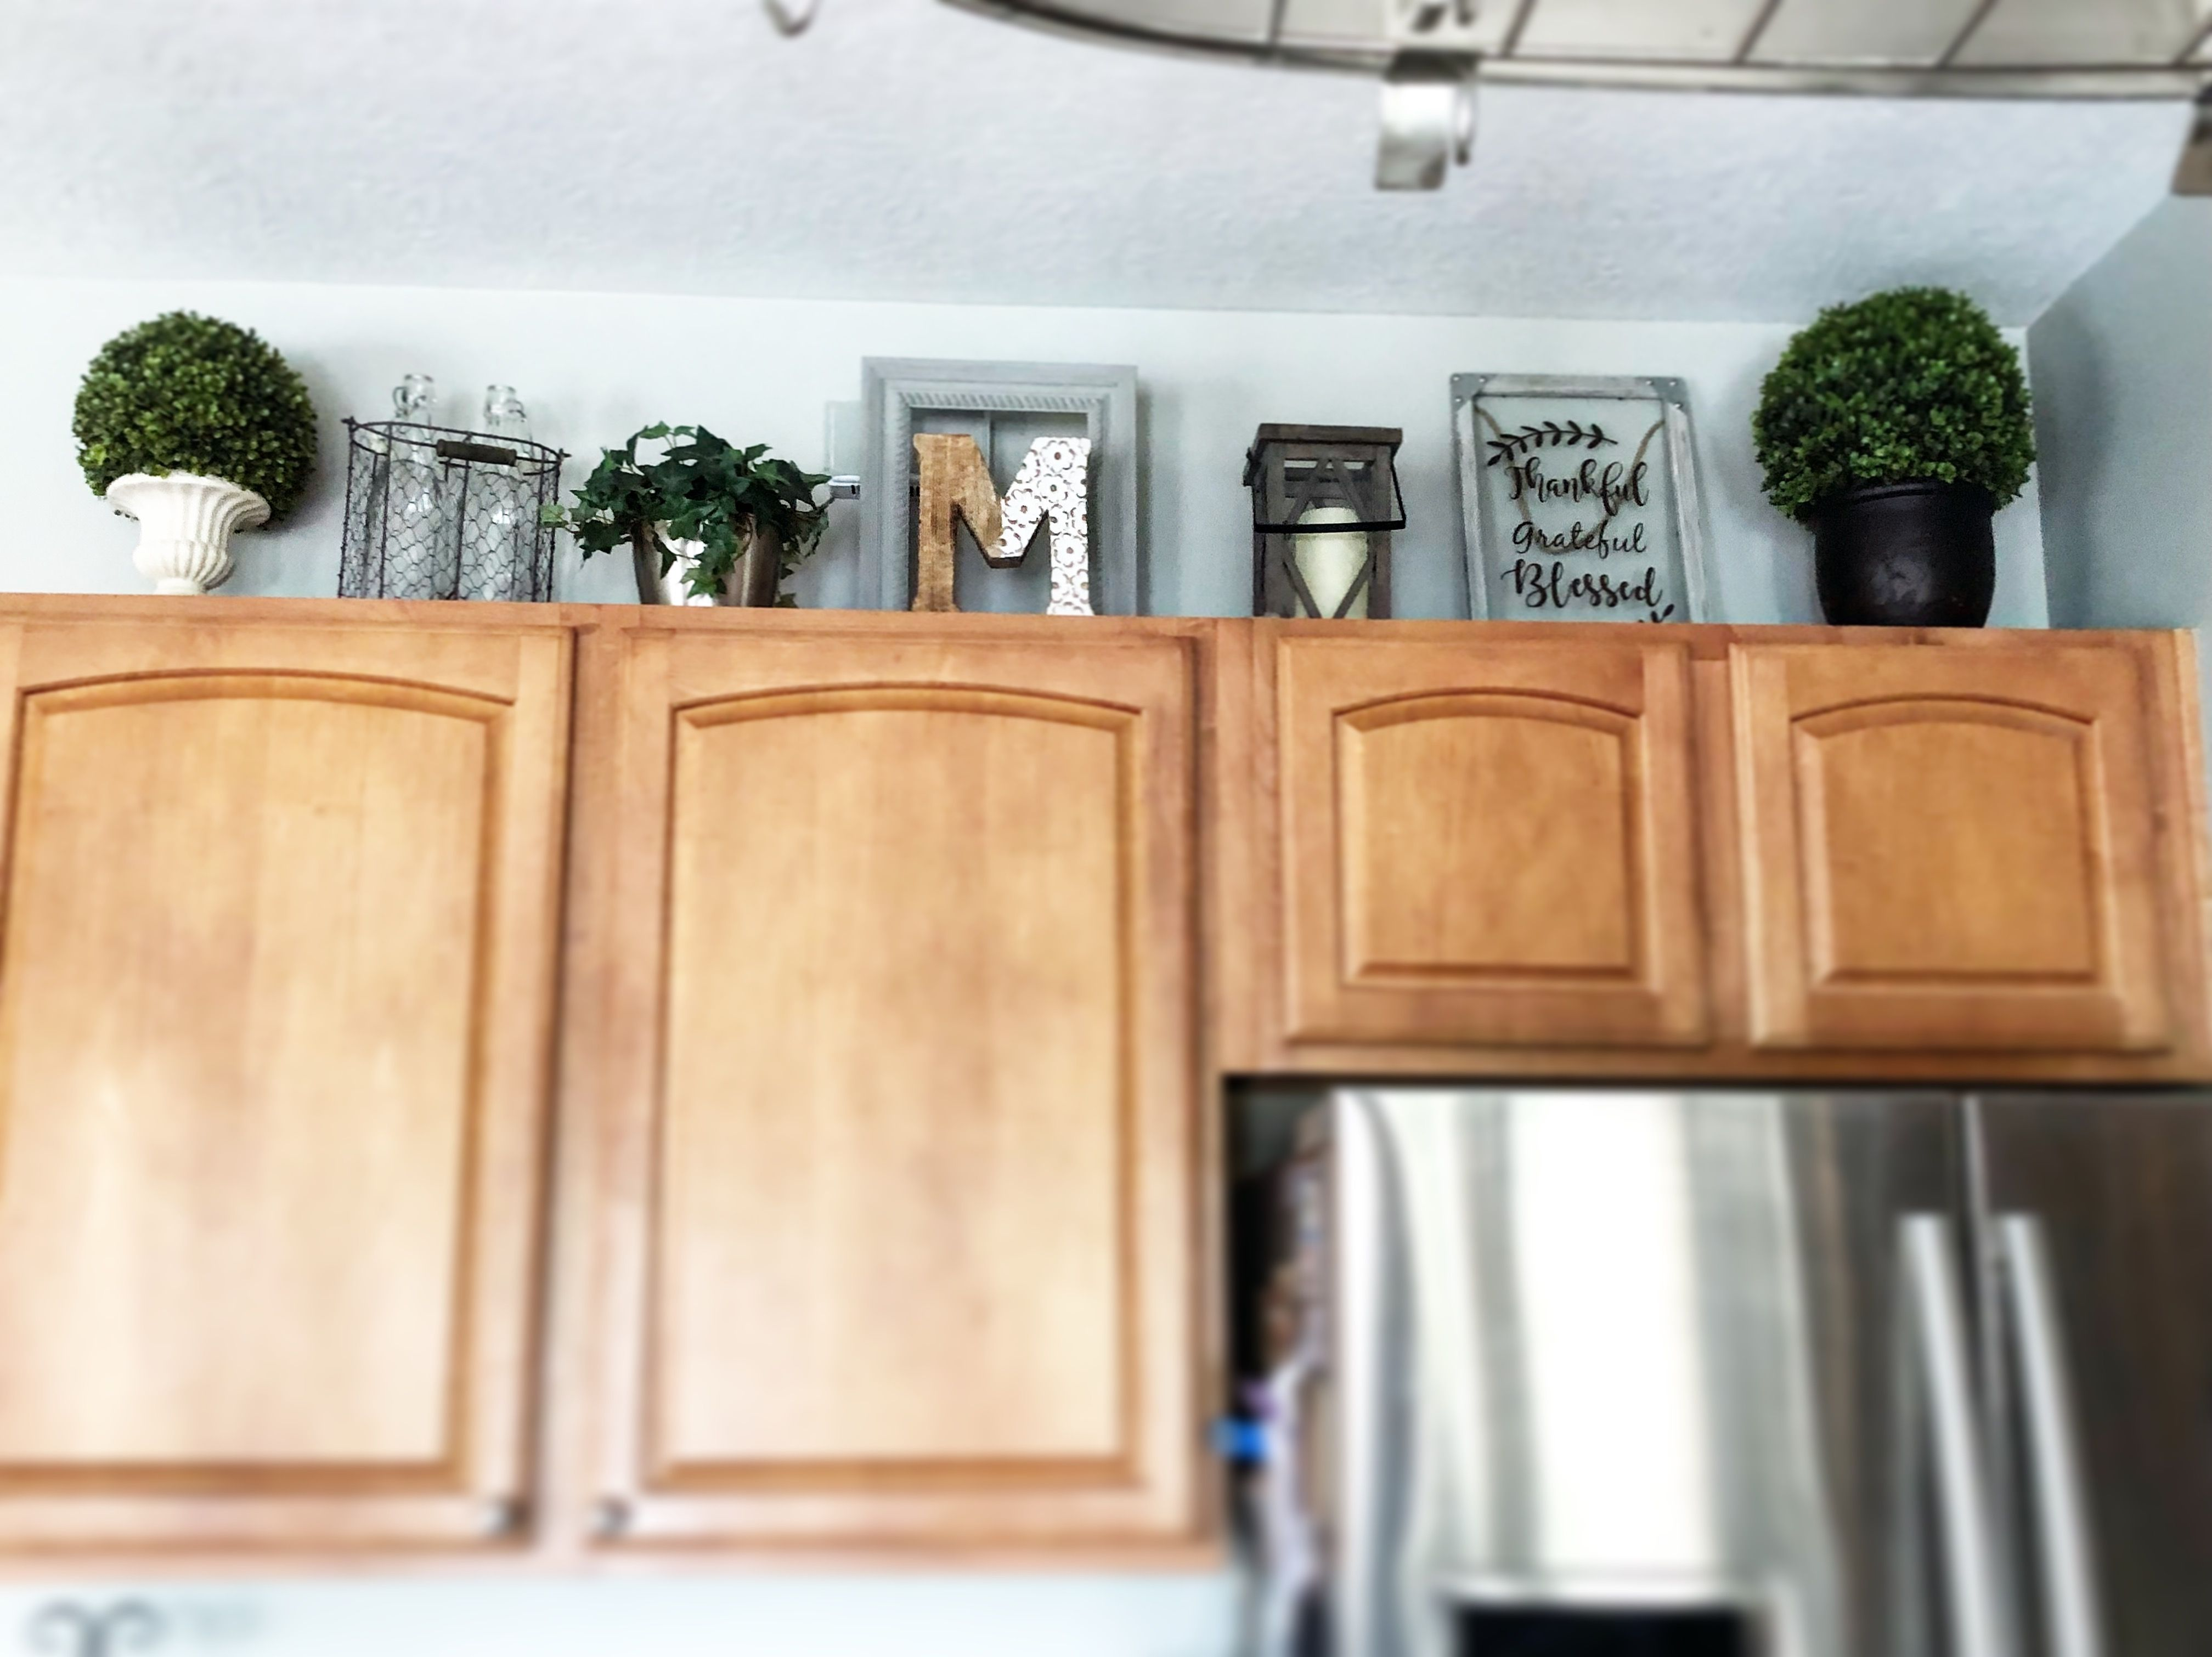 Decorating above the cabinets is so tricky. I tried to add ...